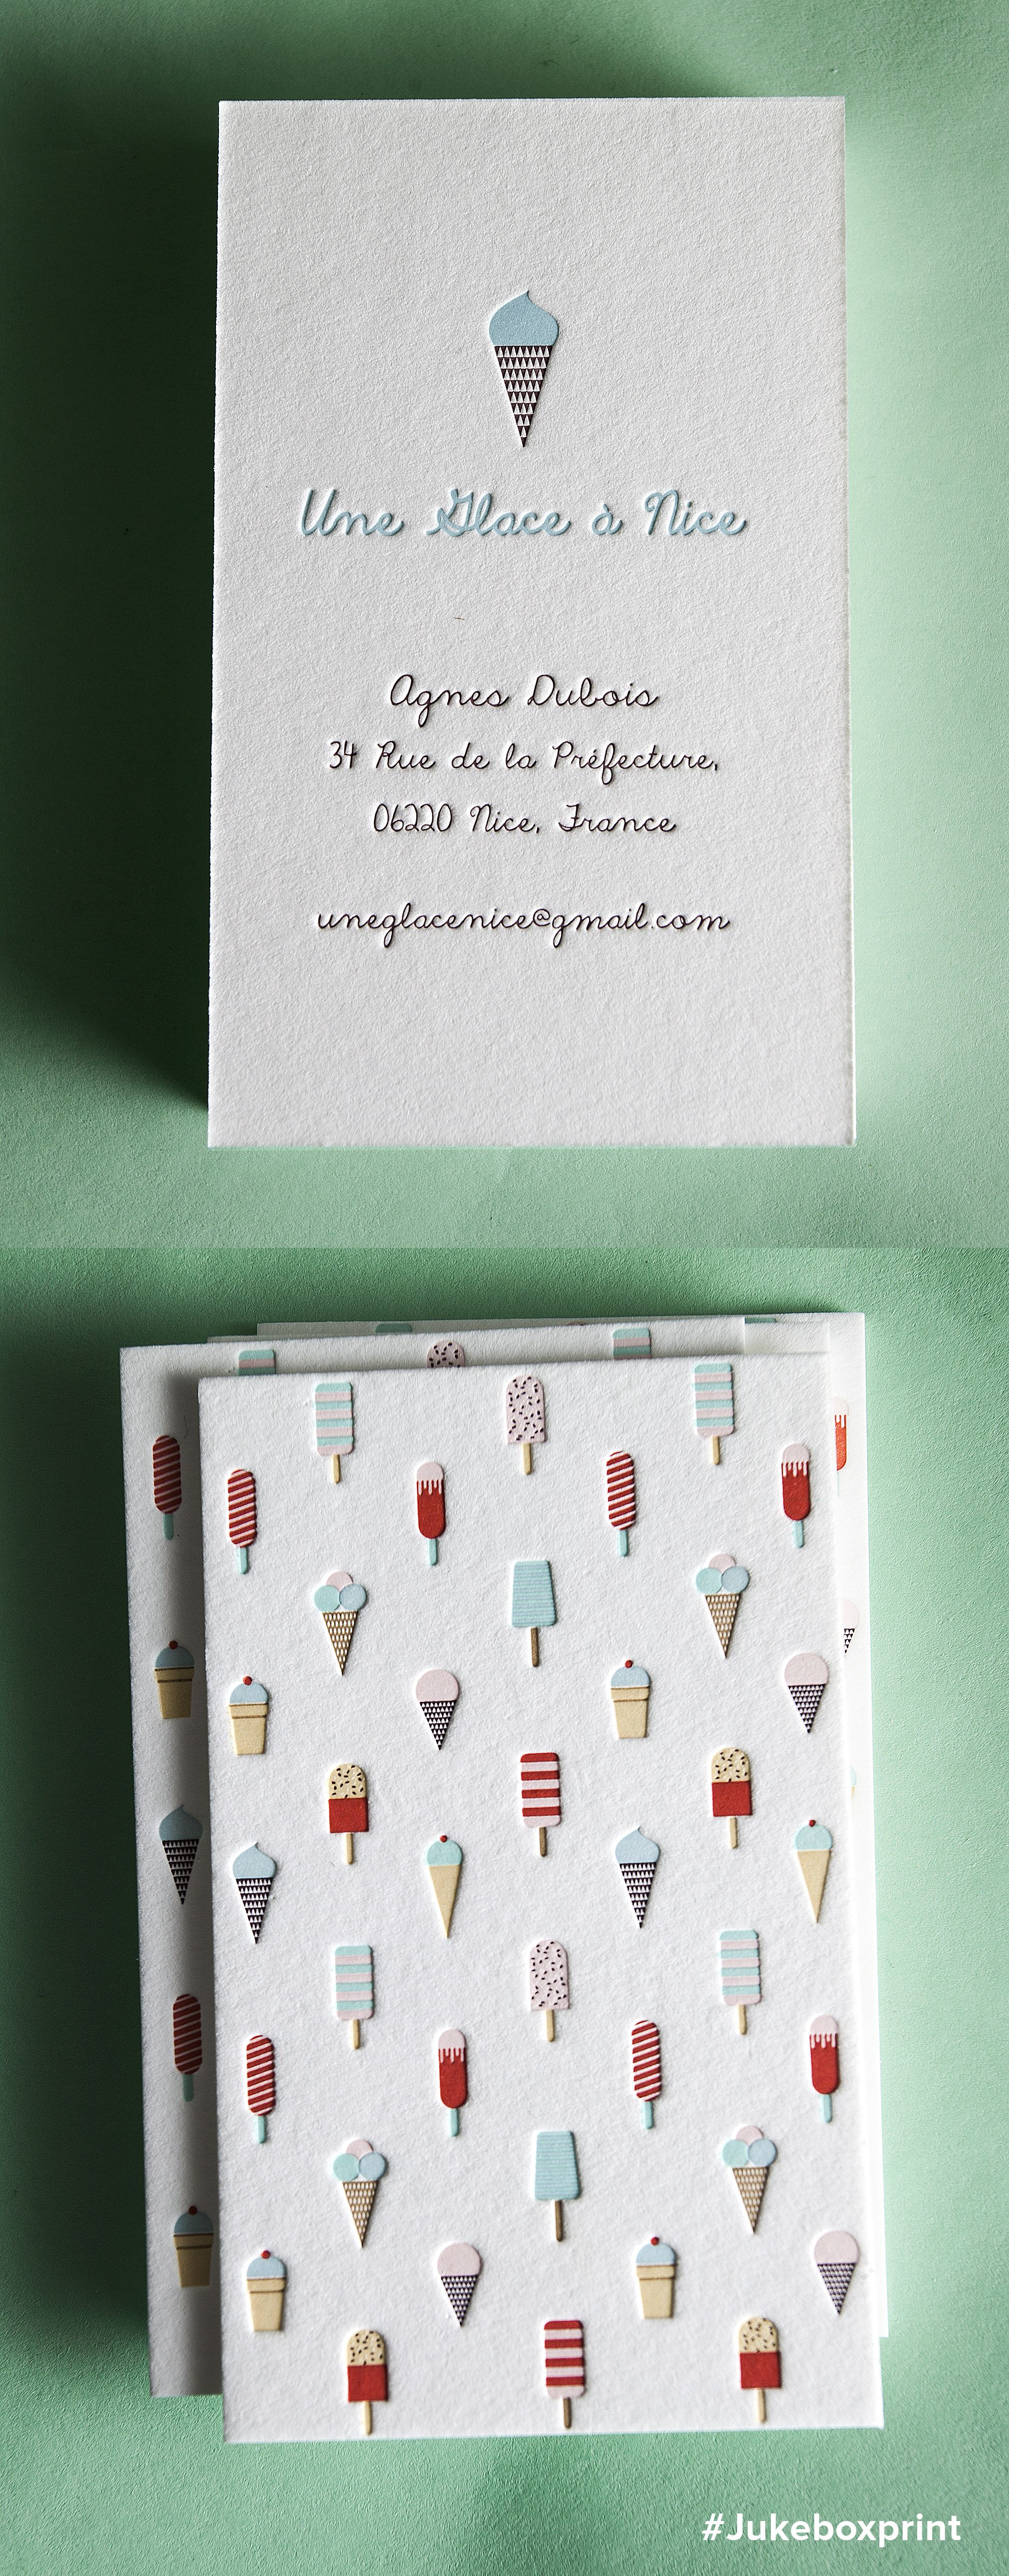 Cute Letterpress Business Cards Produced With Seven Colors